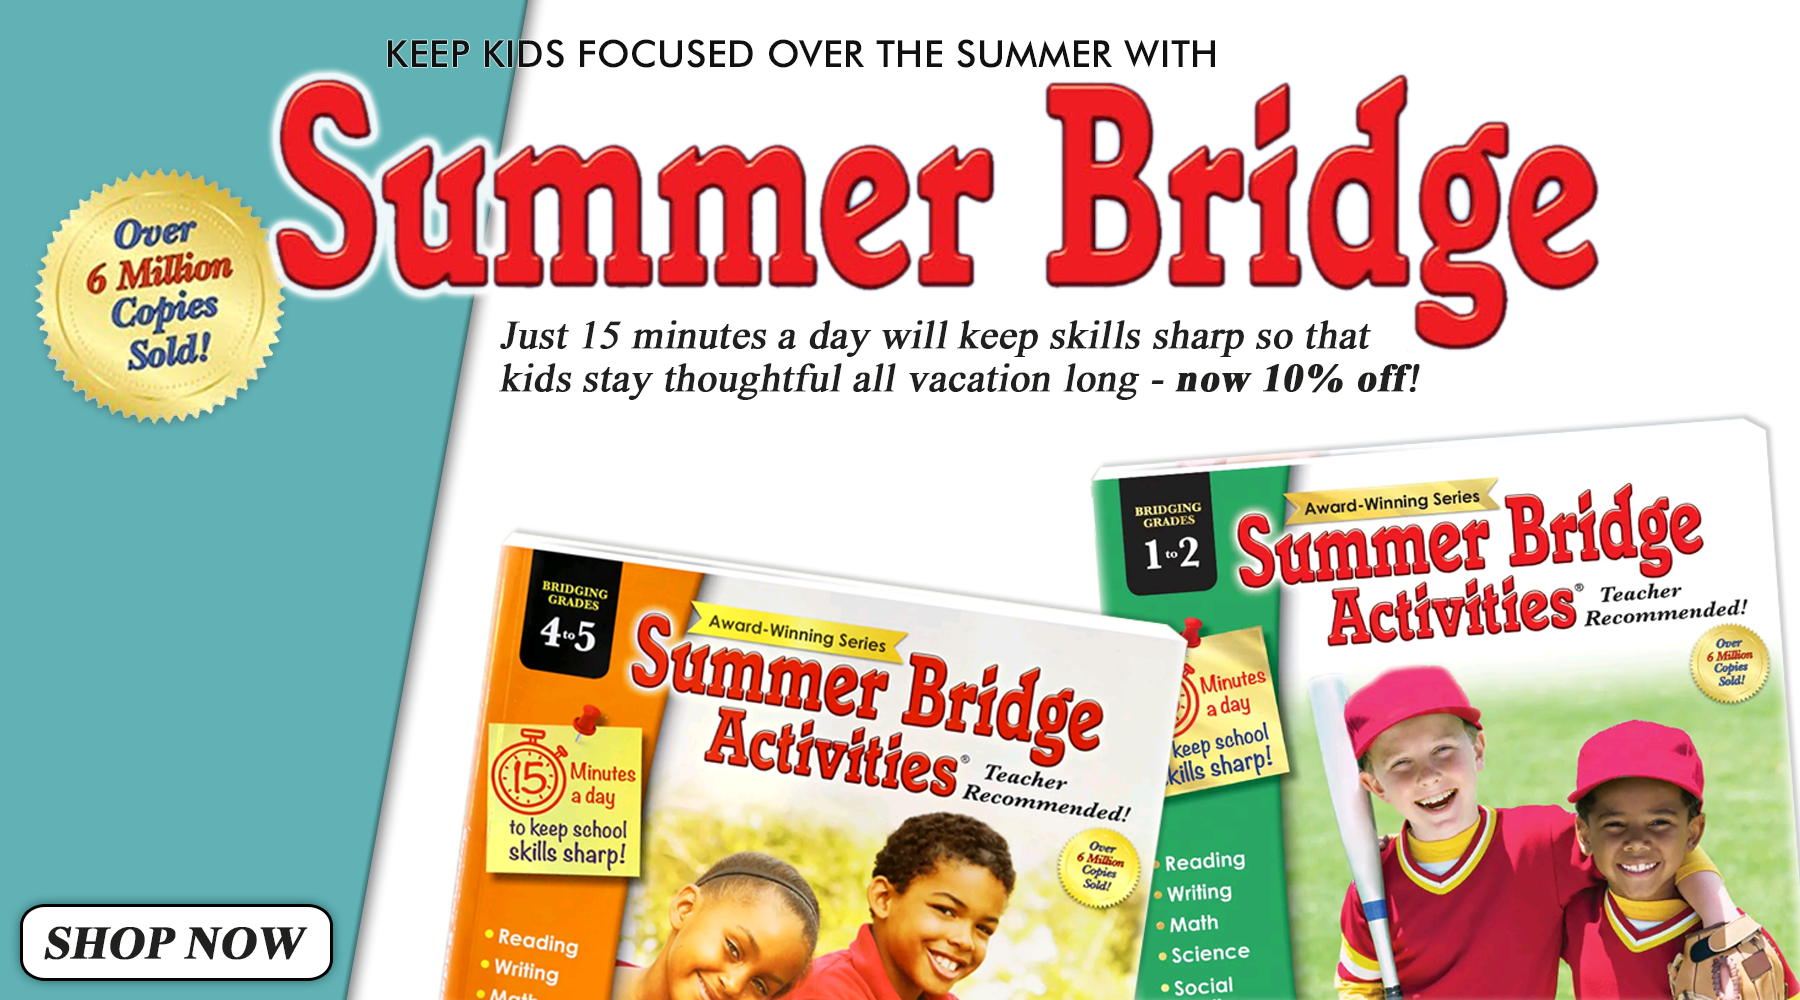 Summer Bridge Activites